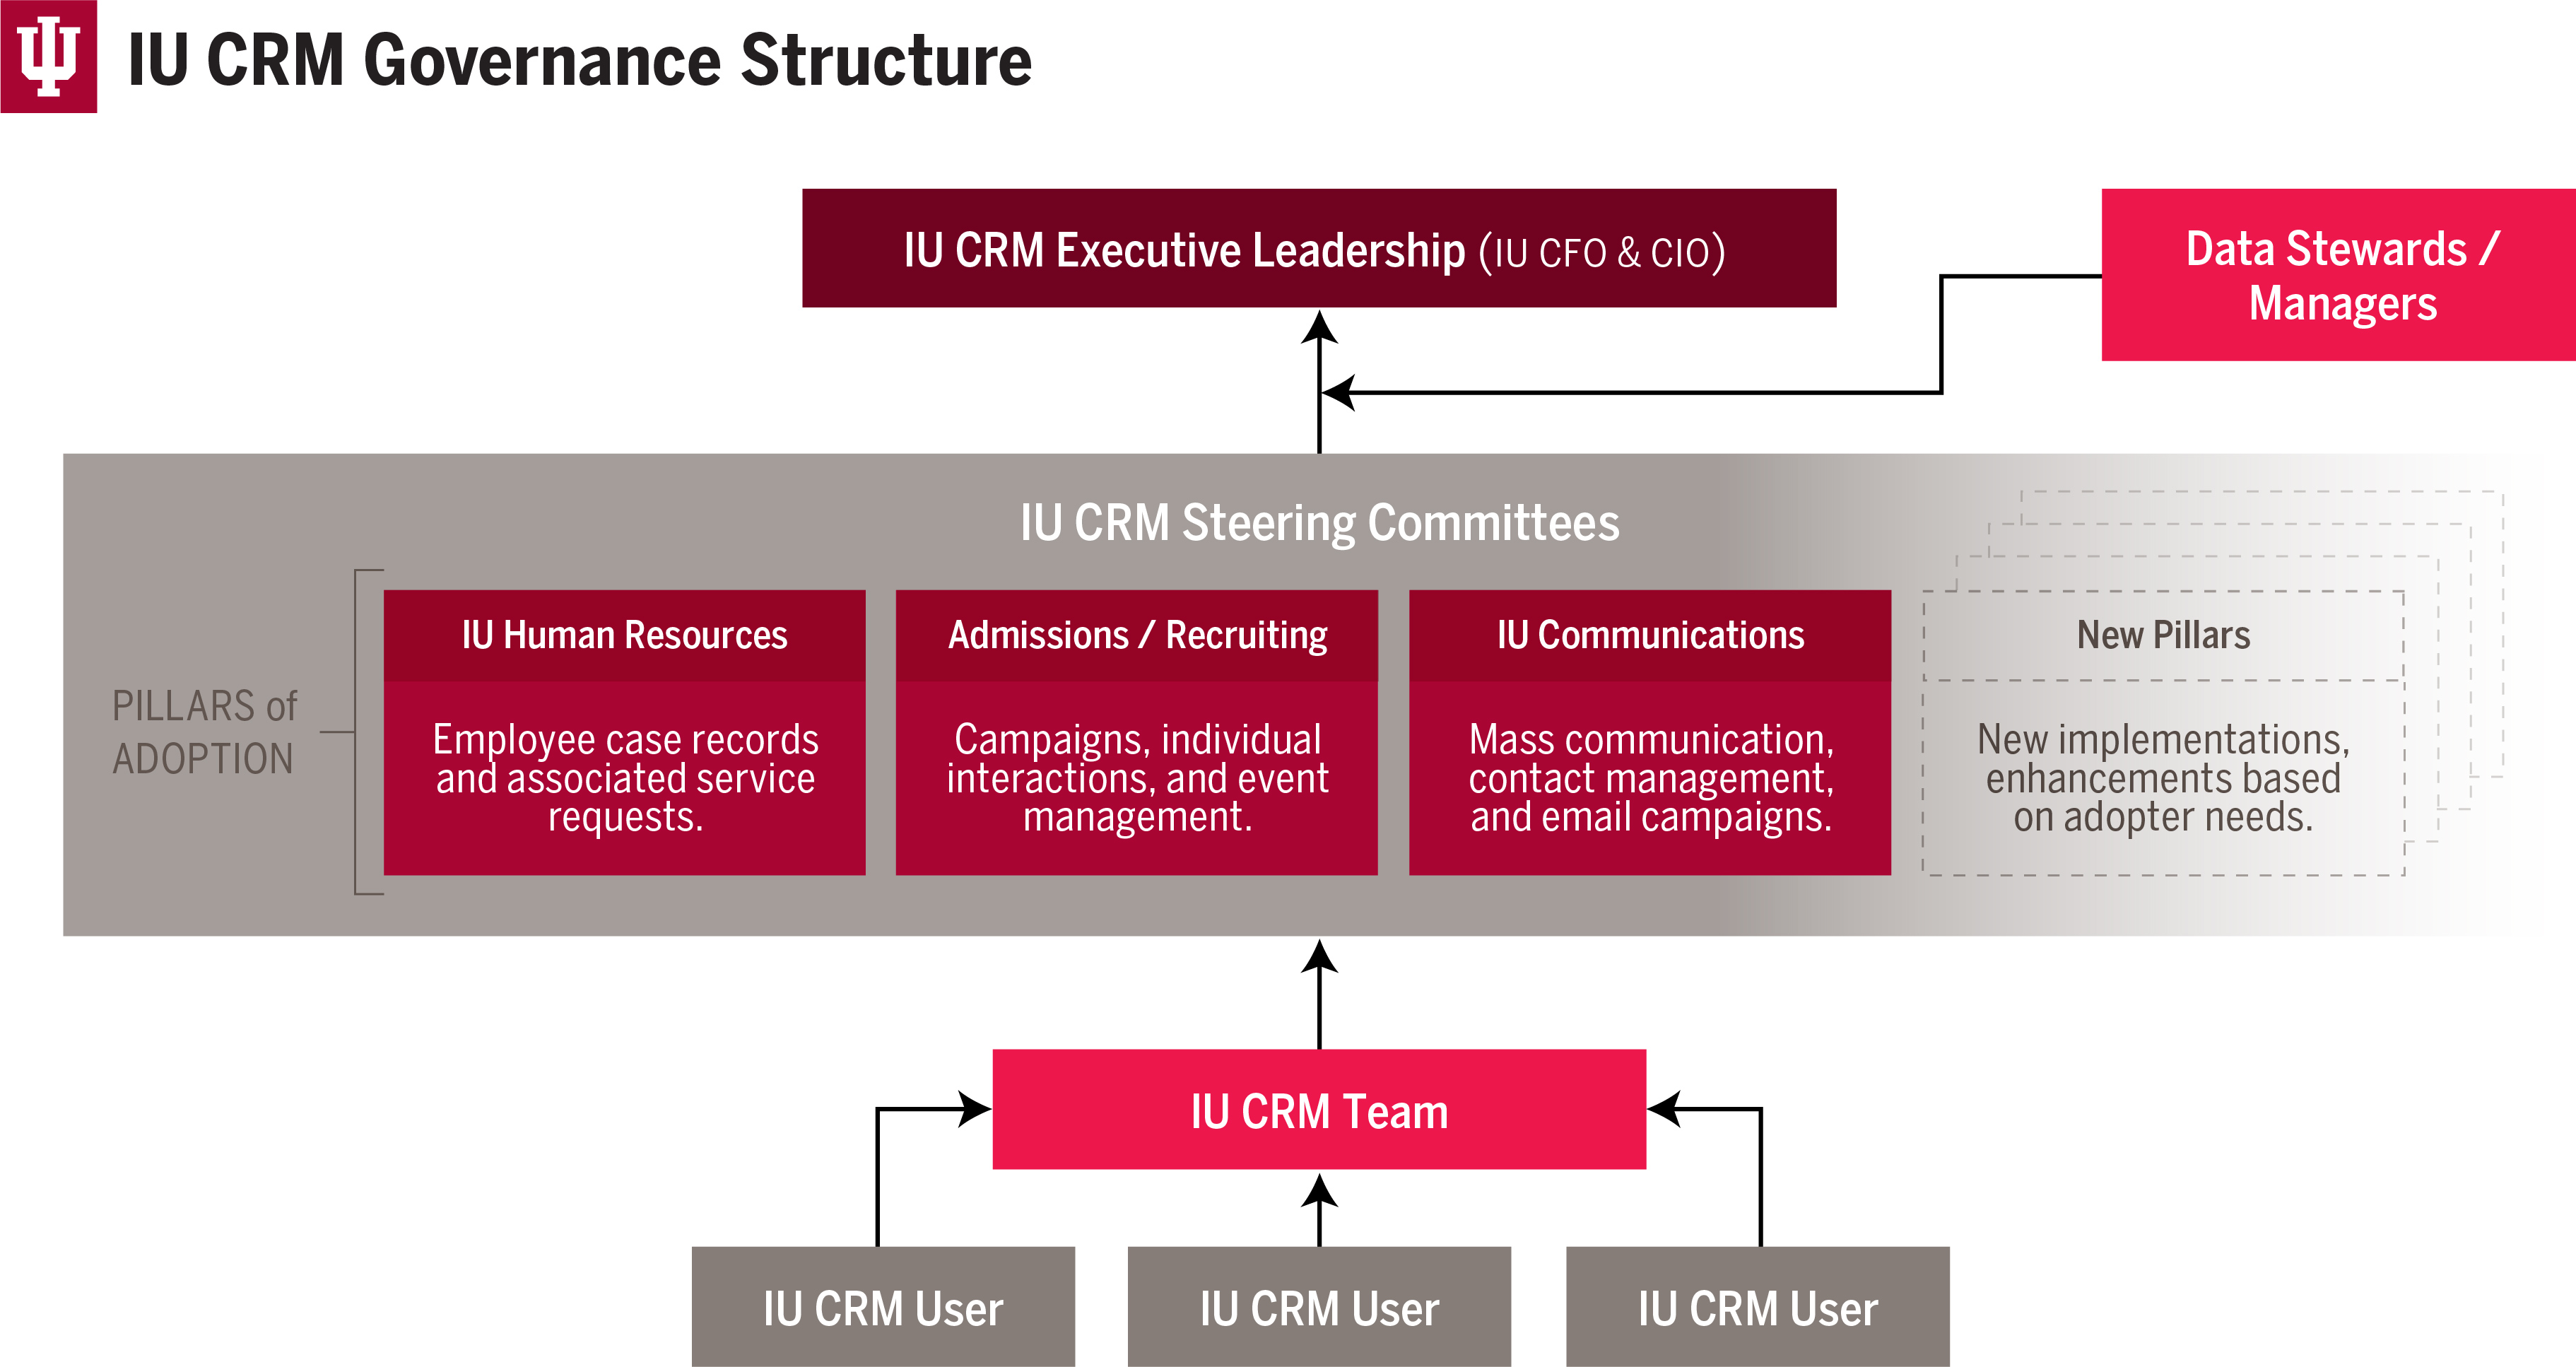 IUCRM.GovernanceStructure